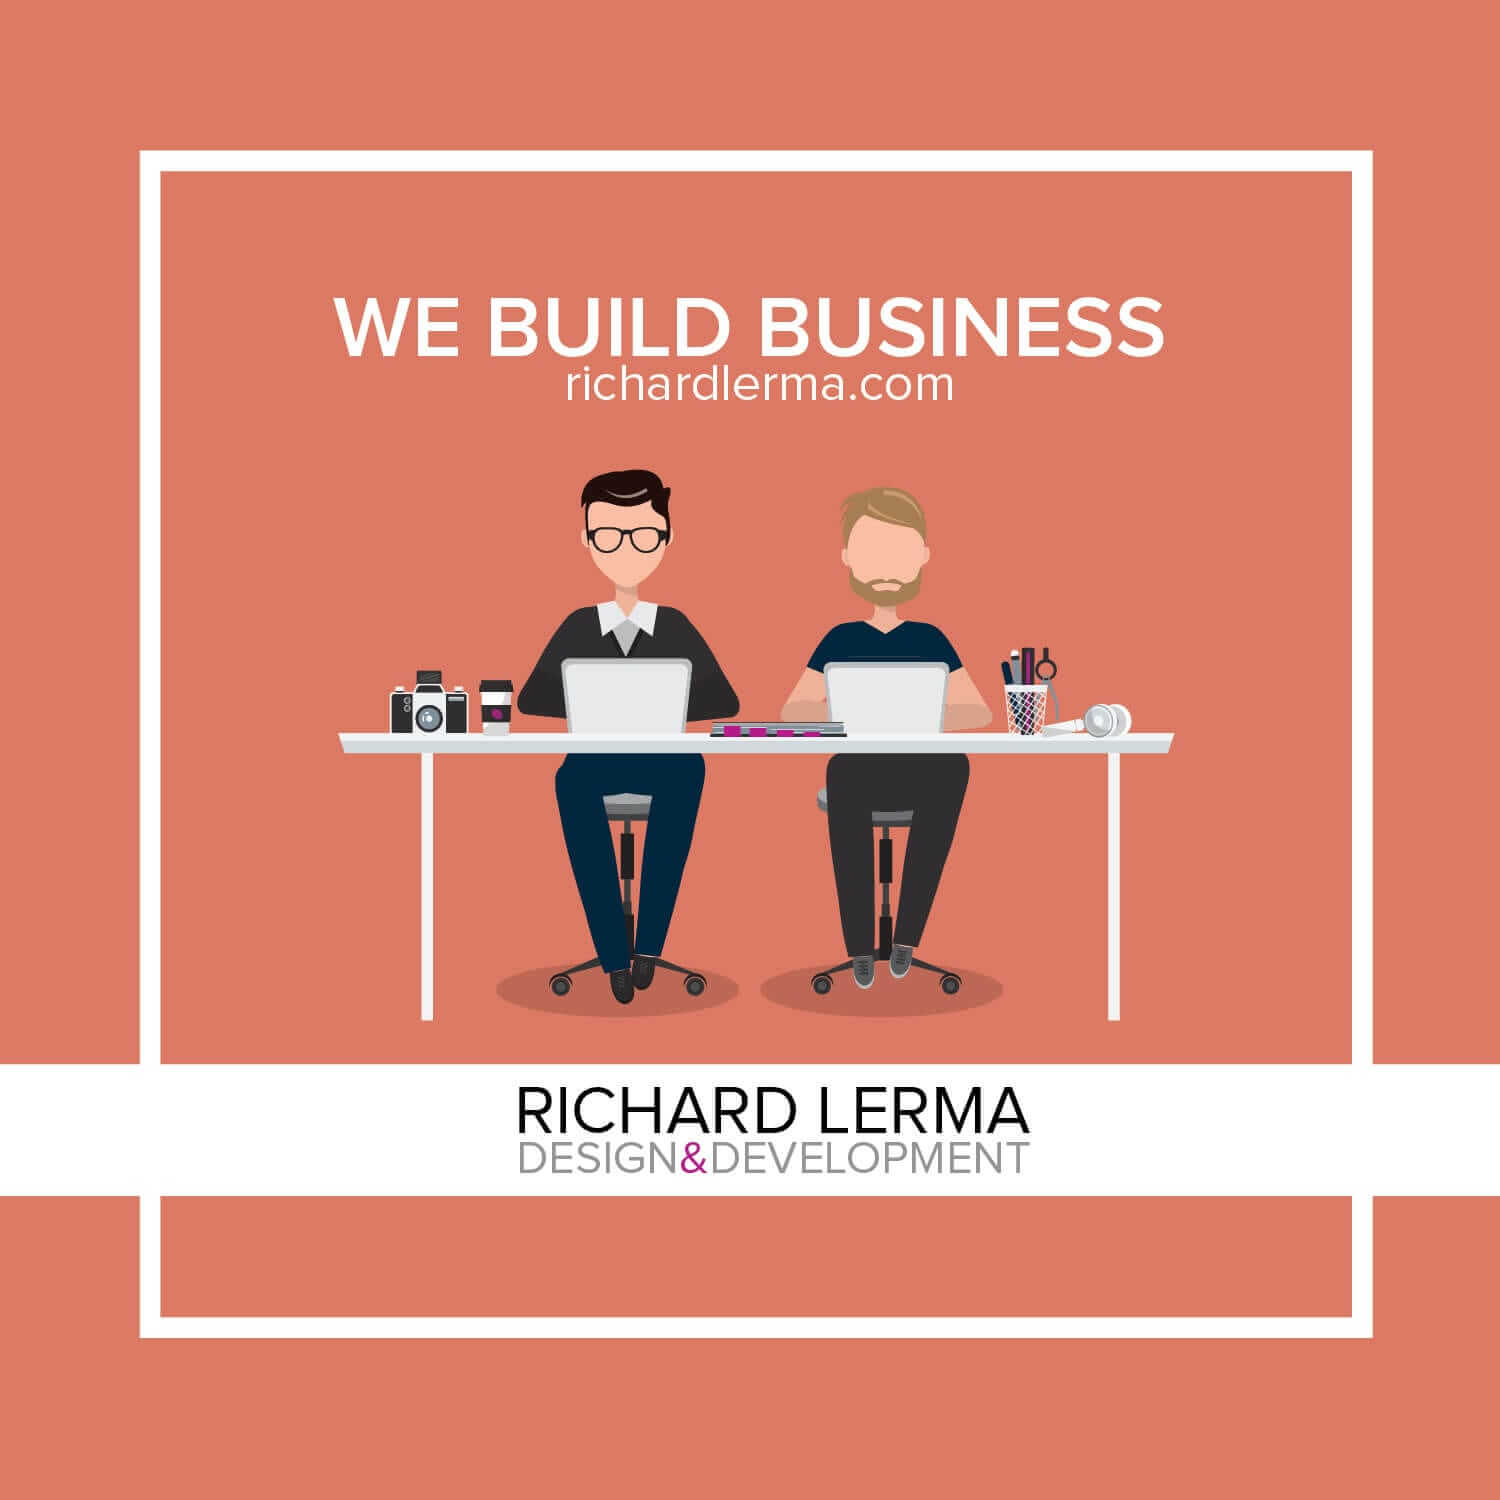 richard lerma business